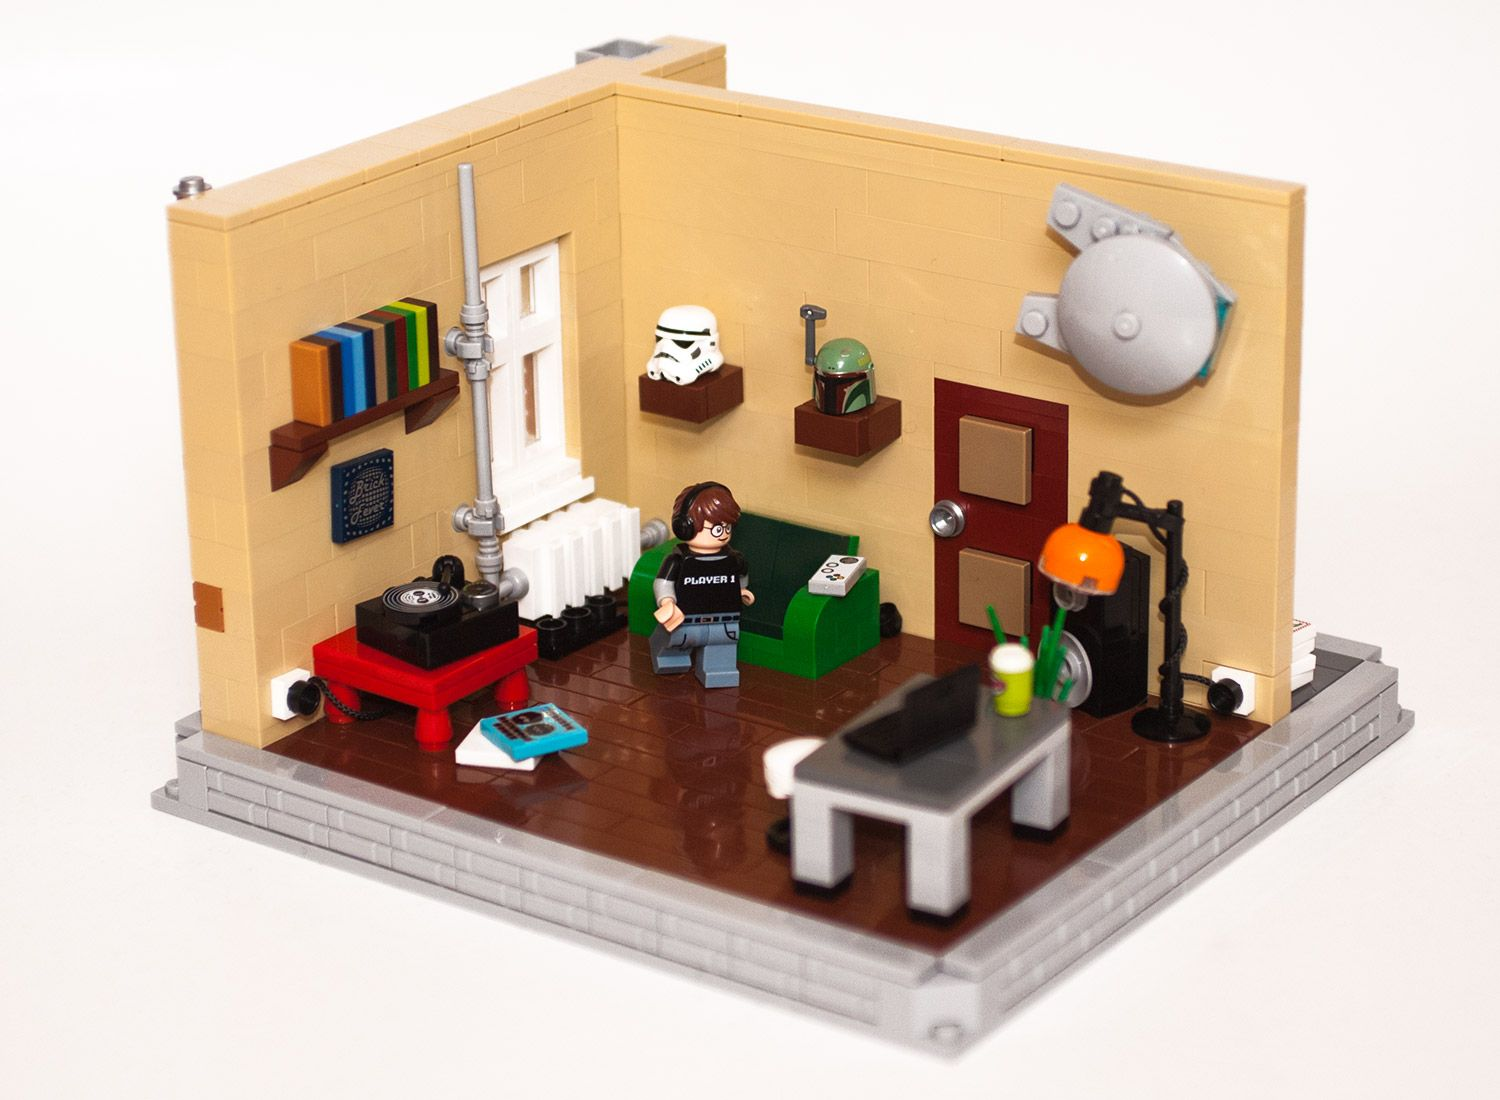 the gamer (series 12) - mini mocs i made with characters from the